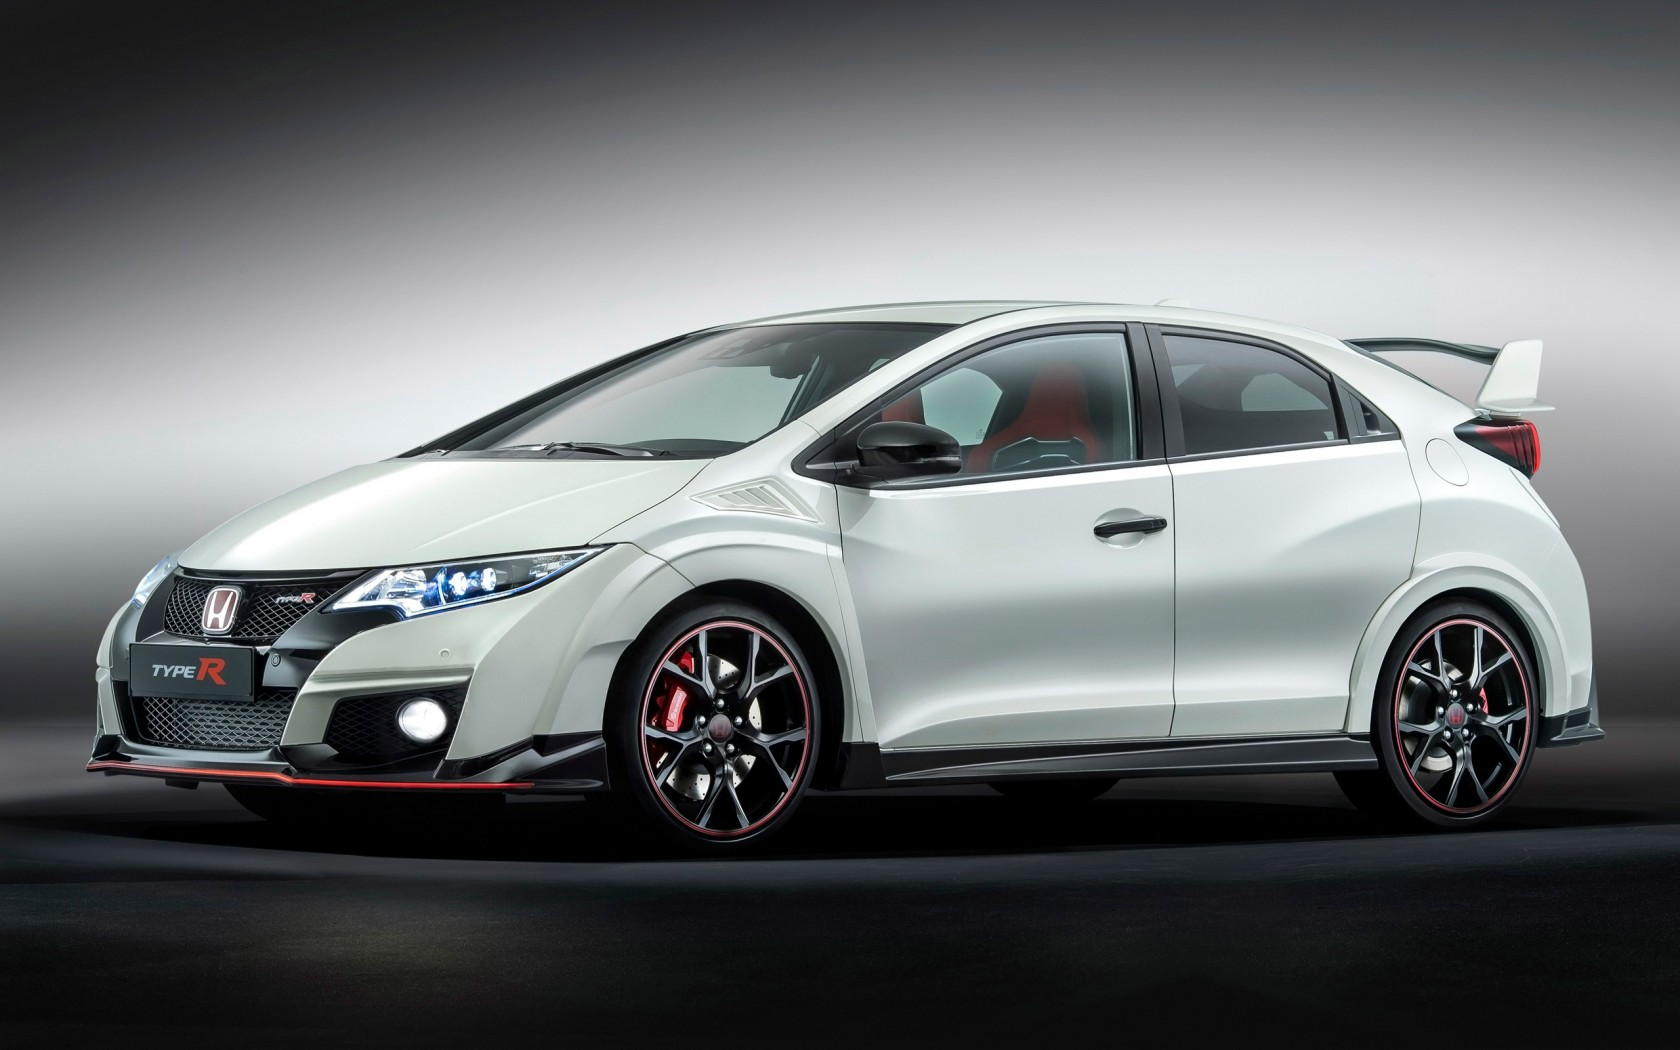 2015 honda civic type r wallpaper hd car wallpapers id 5196. Black Bedroom Furniture Sets. Home Design Ideas